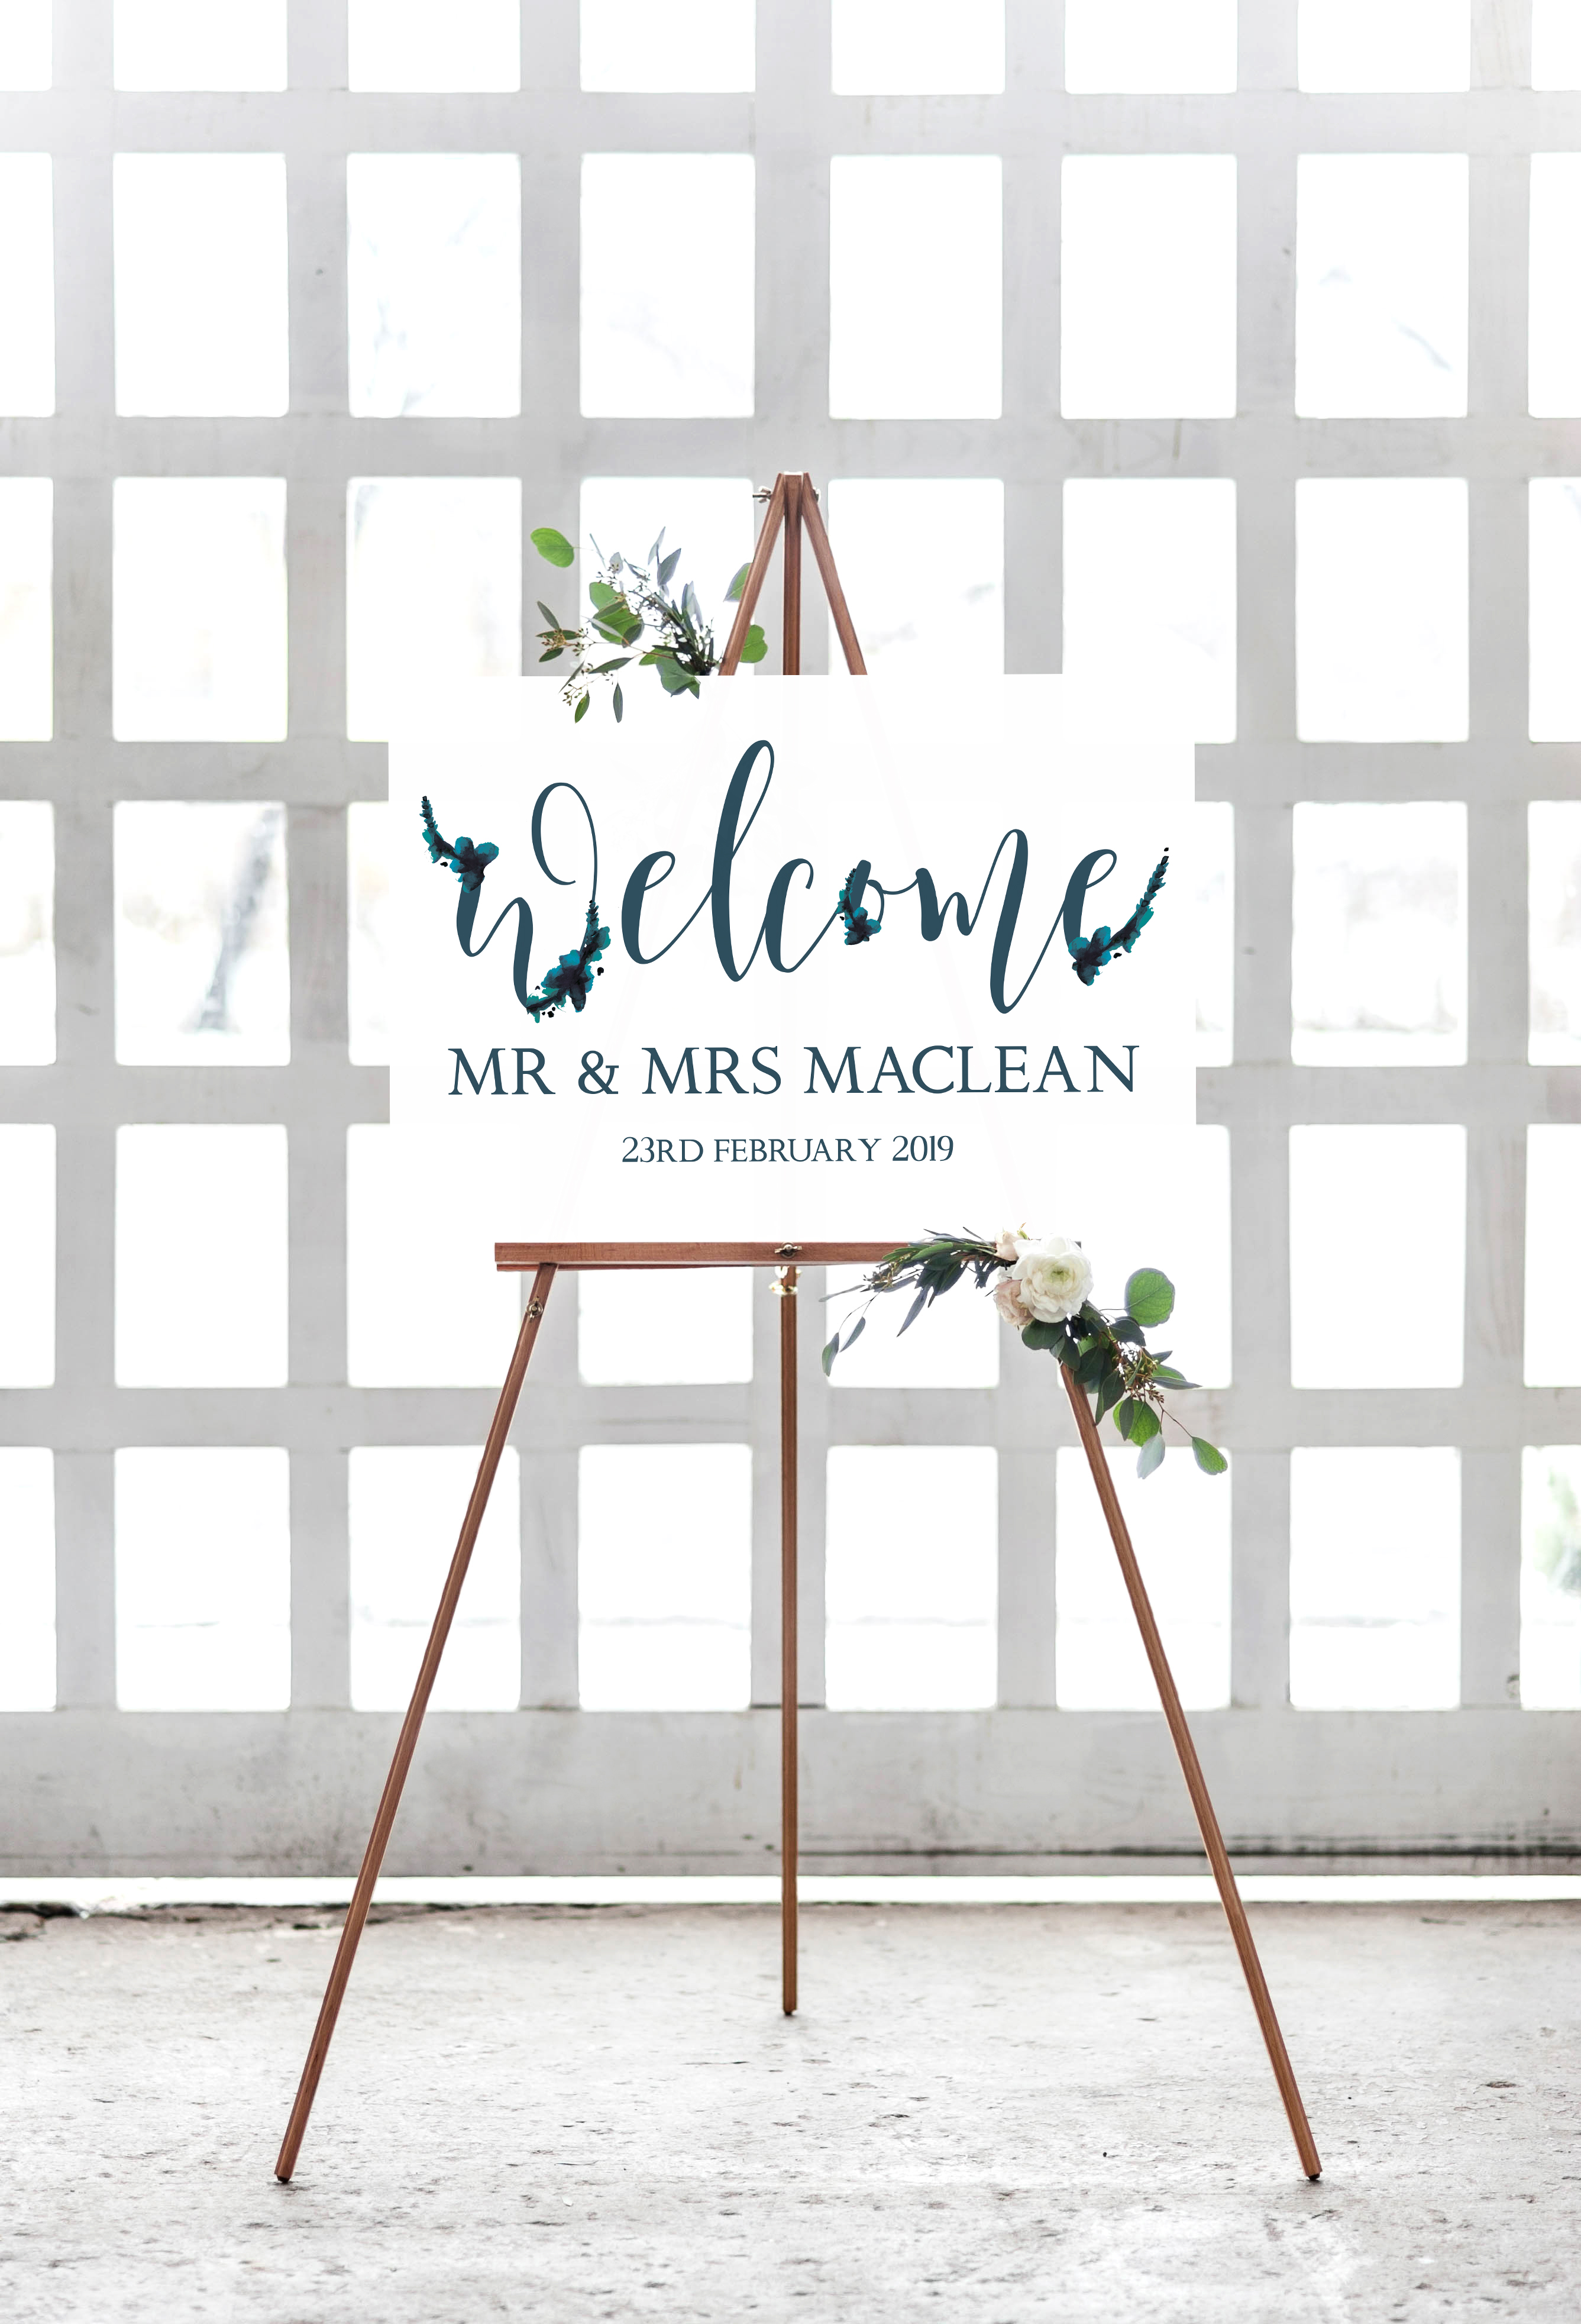 END FEB - Kirsty MacKinnon welcome sign.